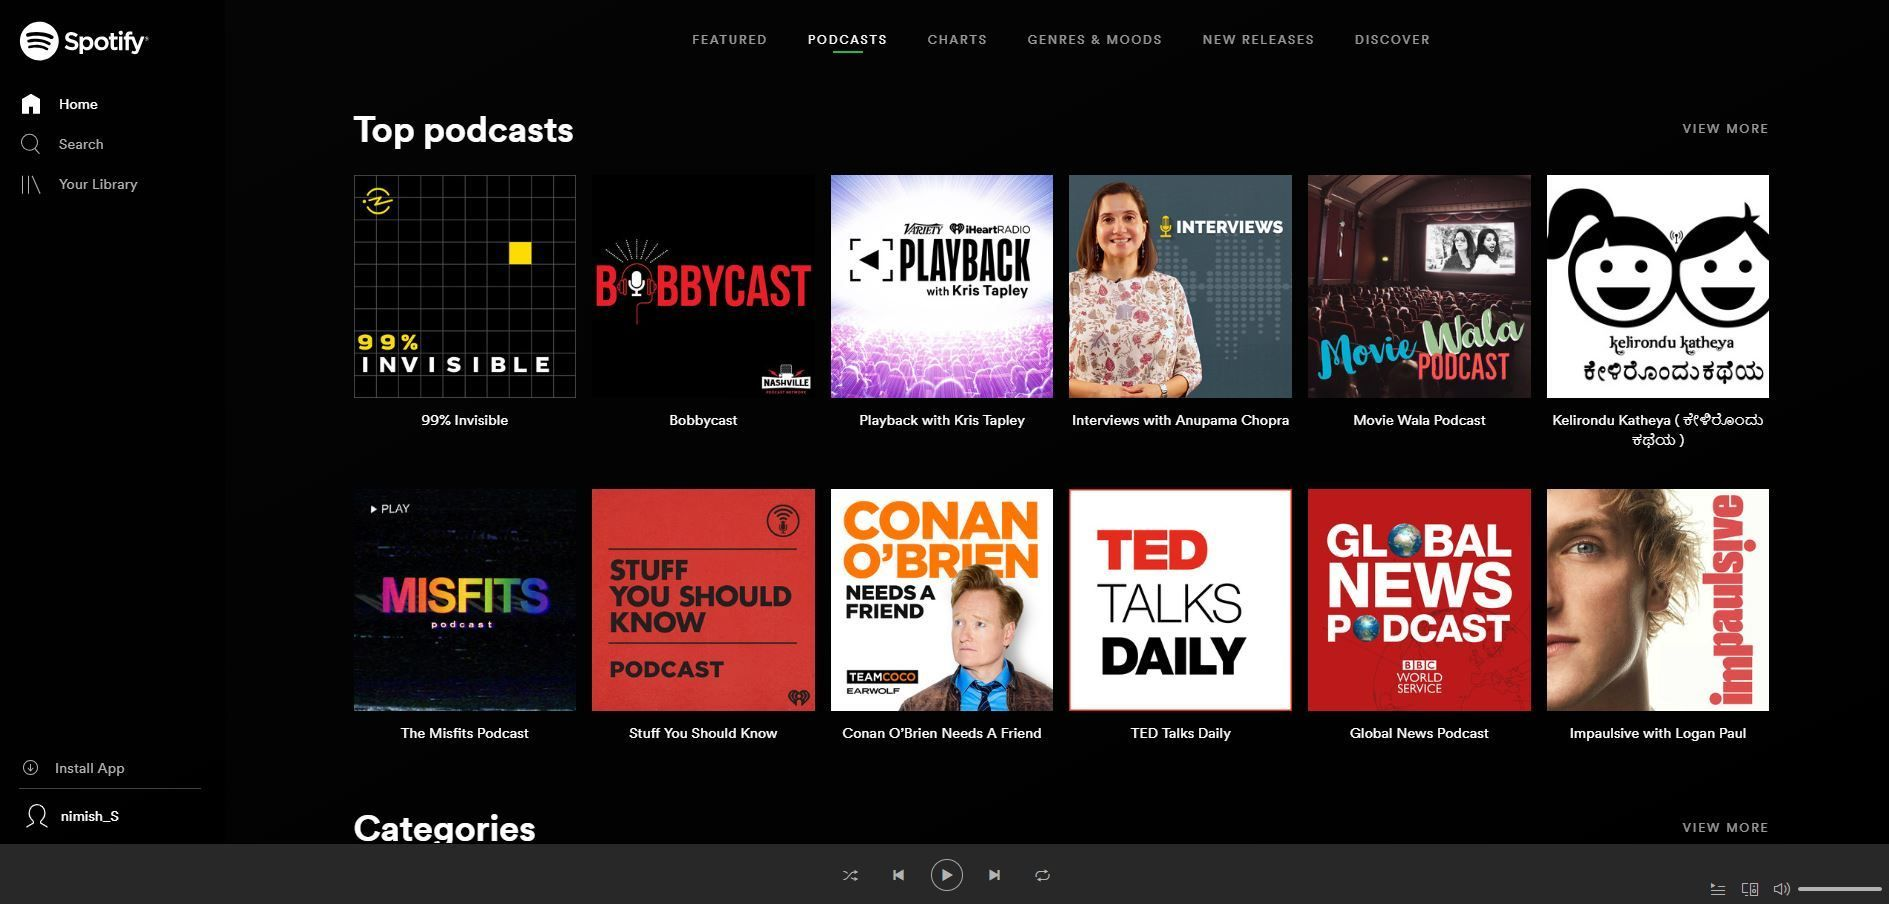 Spotify recently acquired Gimlet and Anchor.fm to reinforce its podcast efforts.